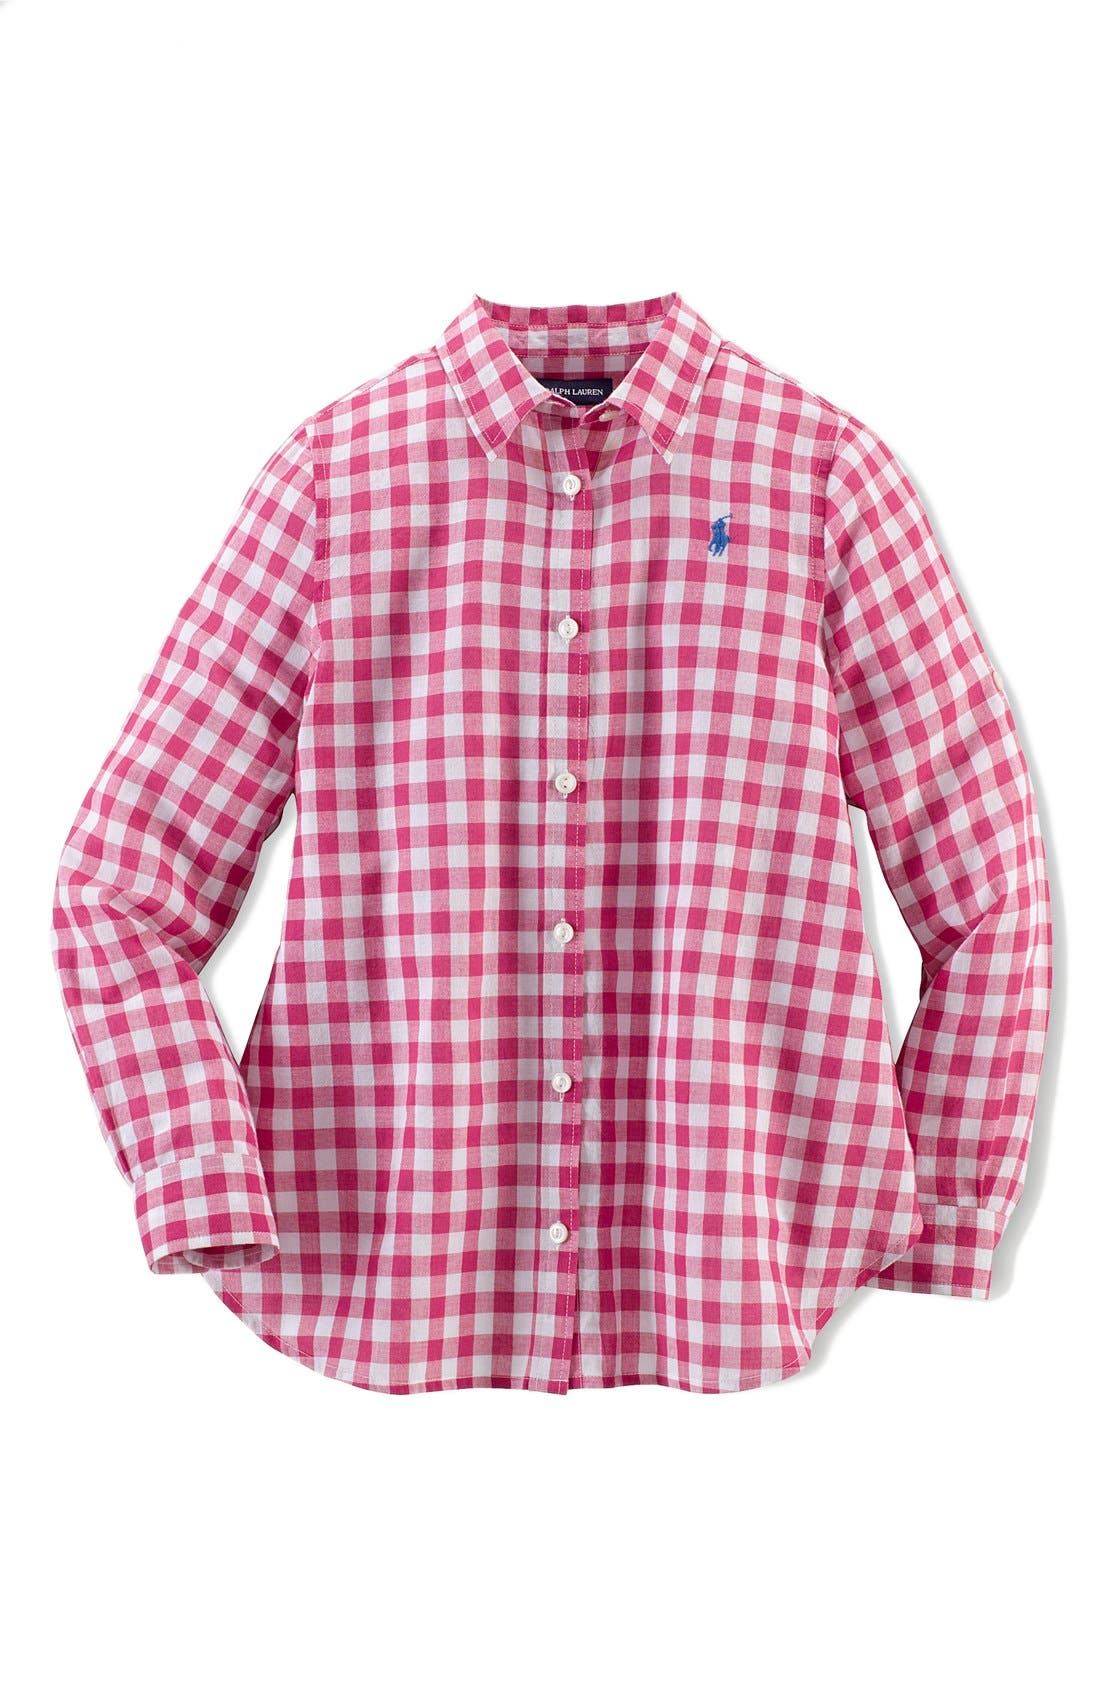 Main Image - Ralph Lauren Gingham Cotton Gauze Shirt (Big Girls)